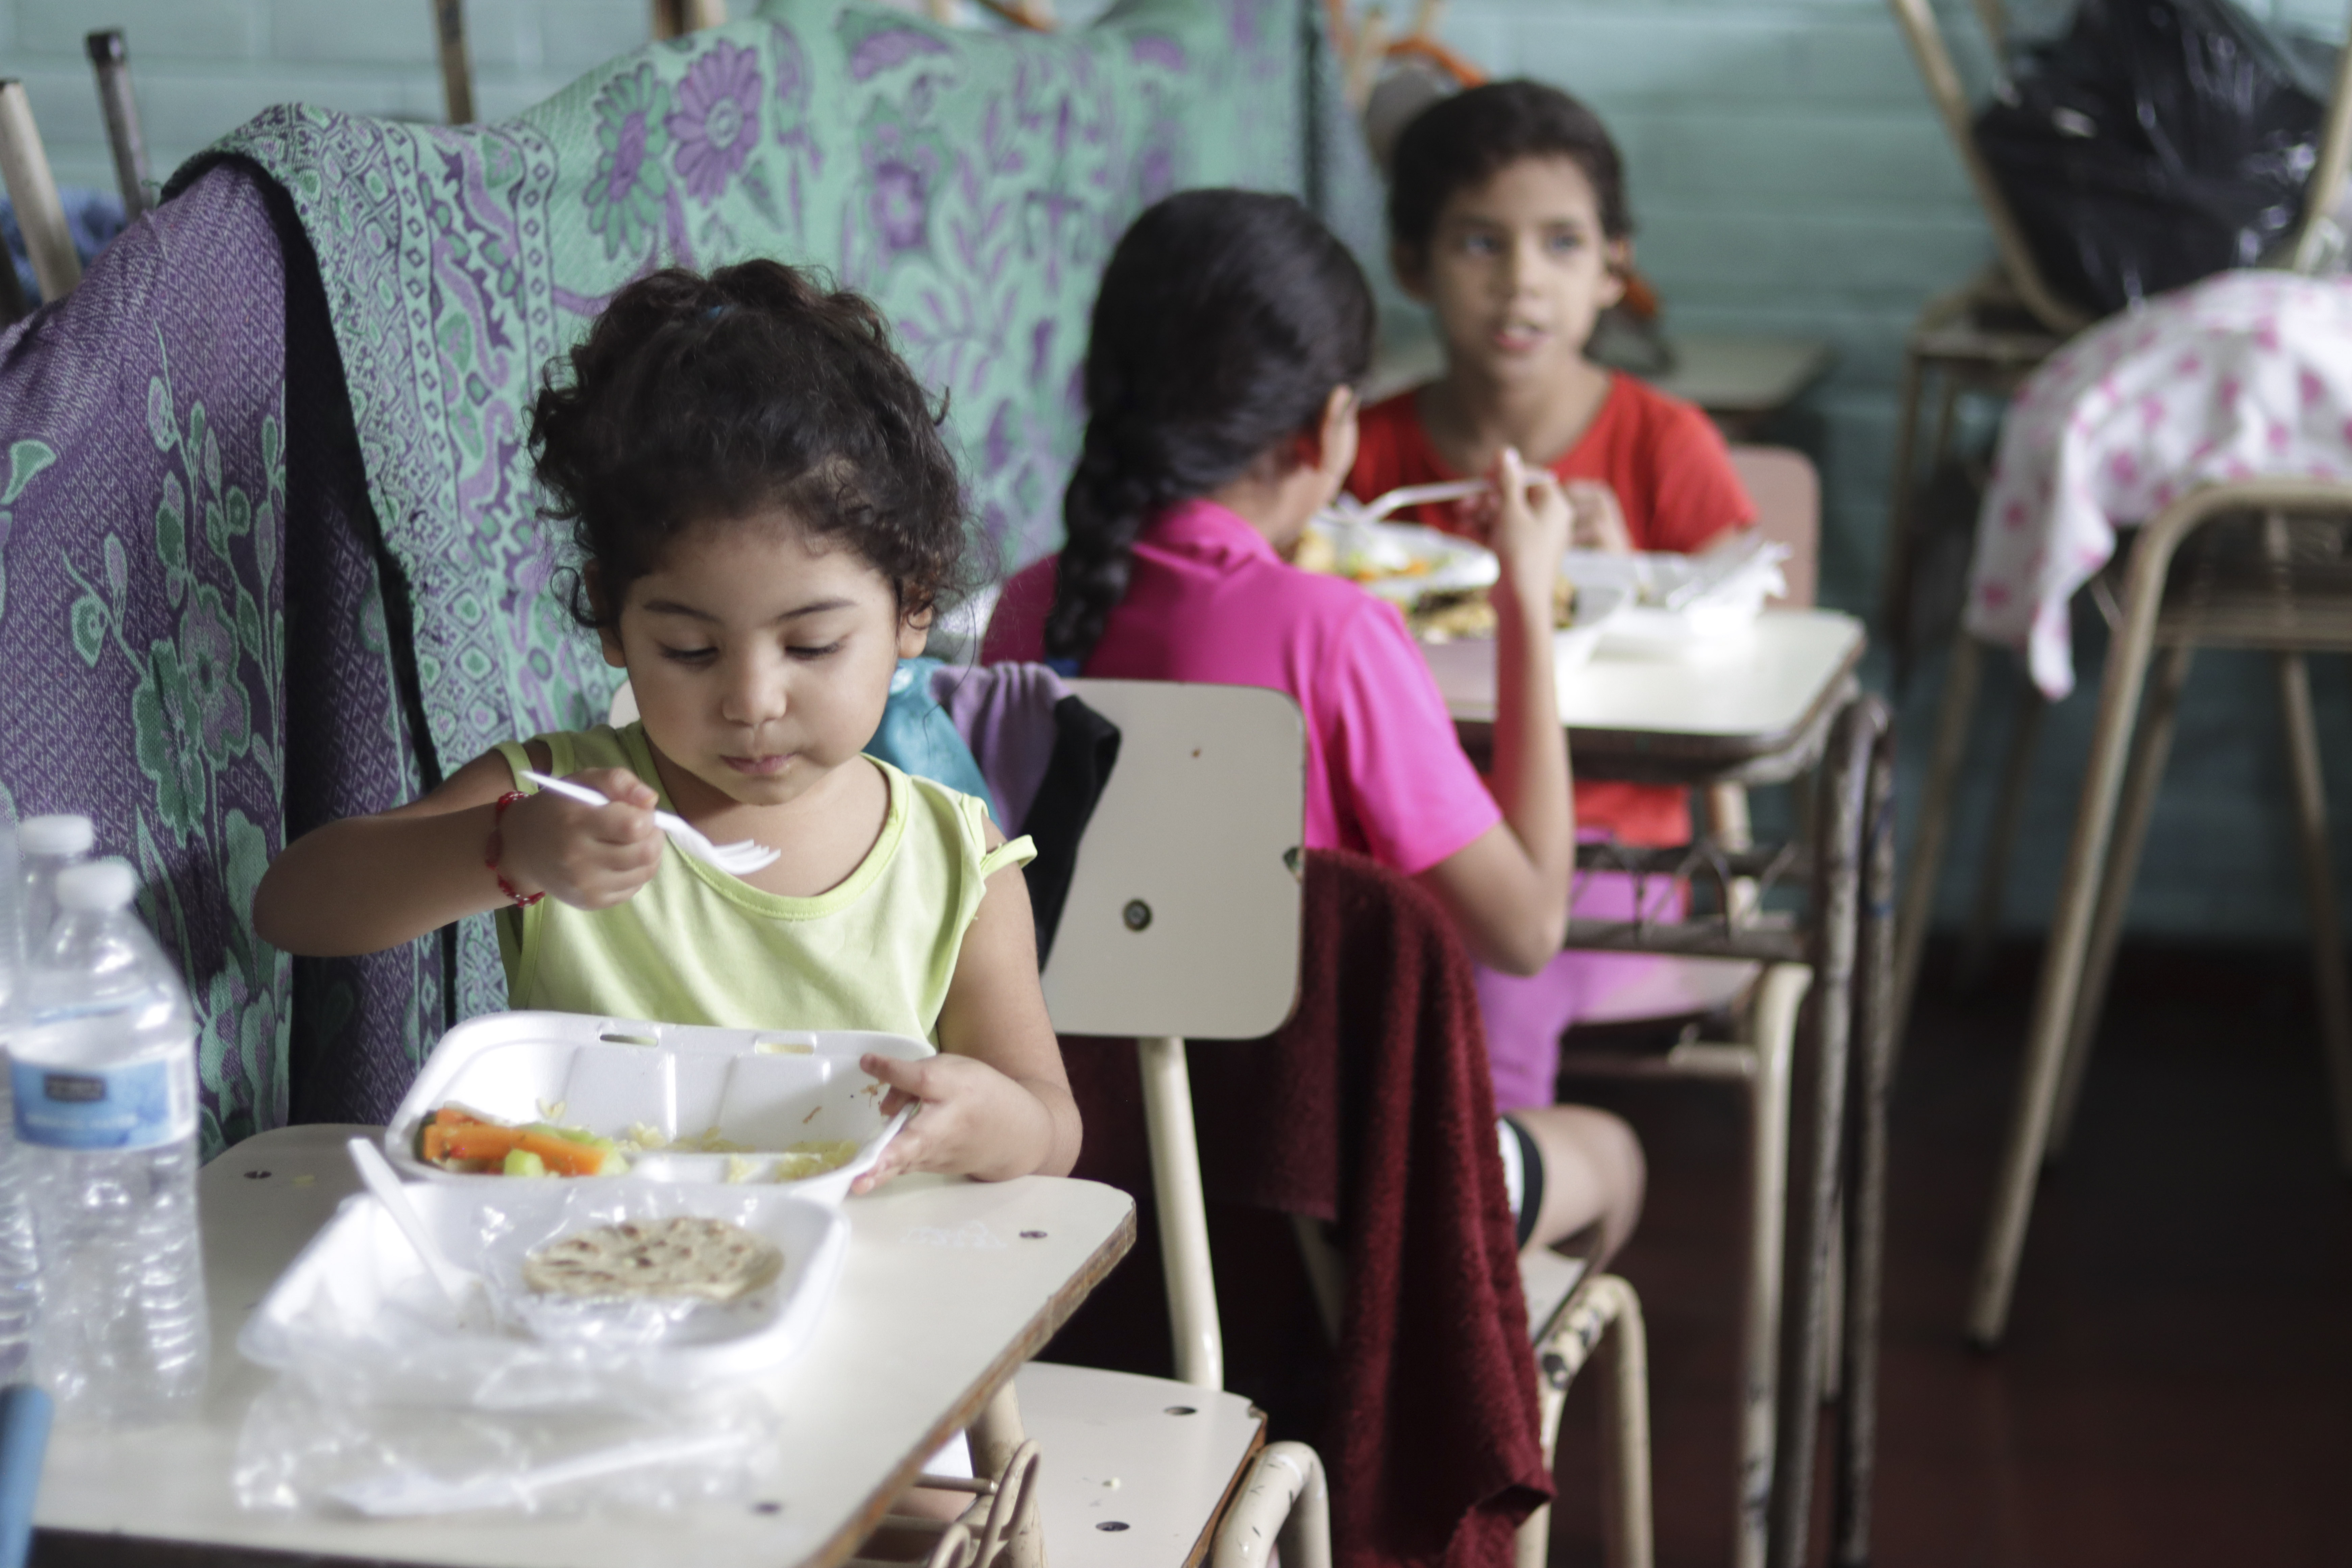 6,000 Children Die of Hunger Caused by Corona – Every Day